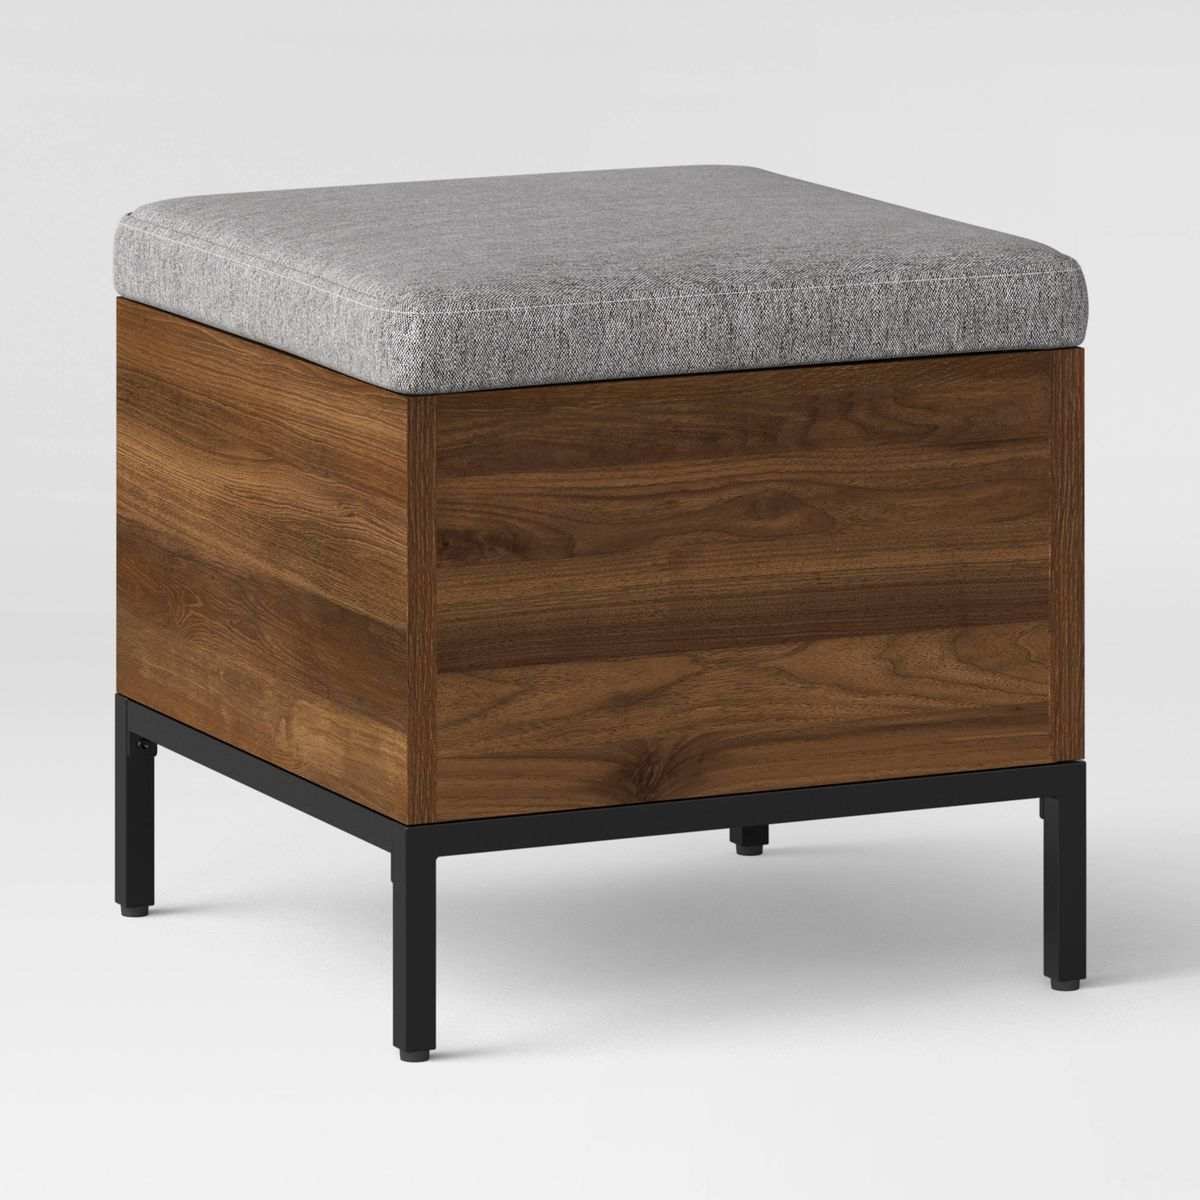 target project midcentury inspired furniture line launches curbed accent table loring storage cube exterior nautical decor hoodie jacket wood and metal coffee end tables modern